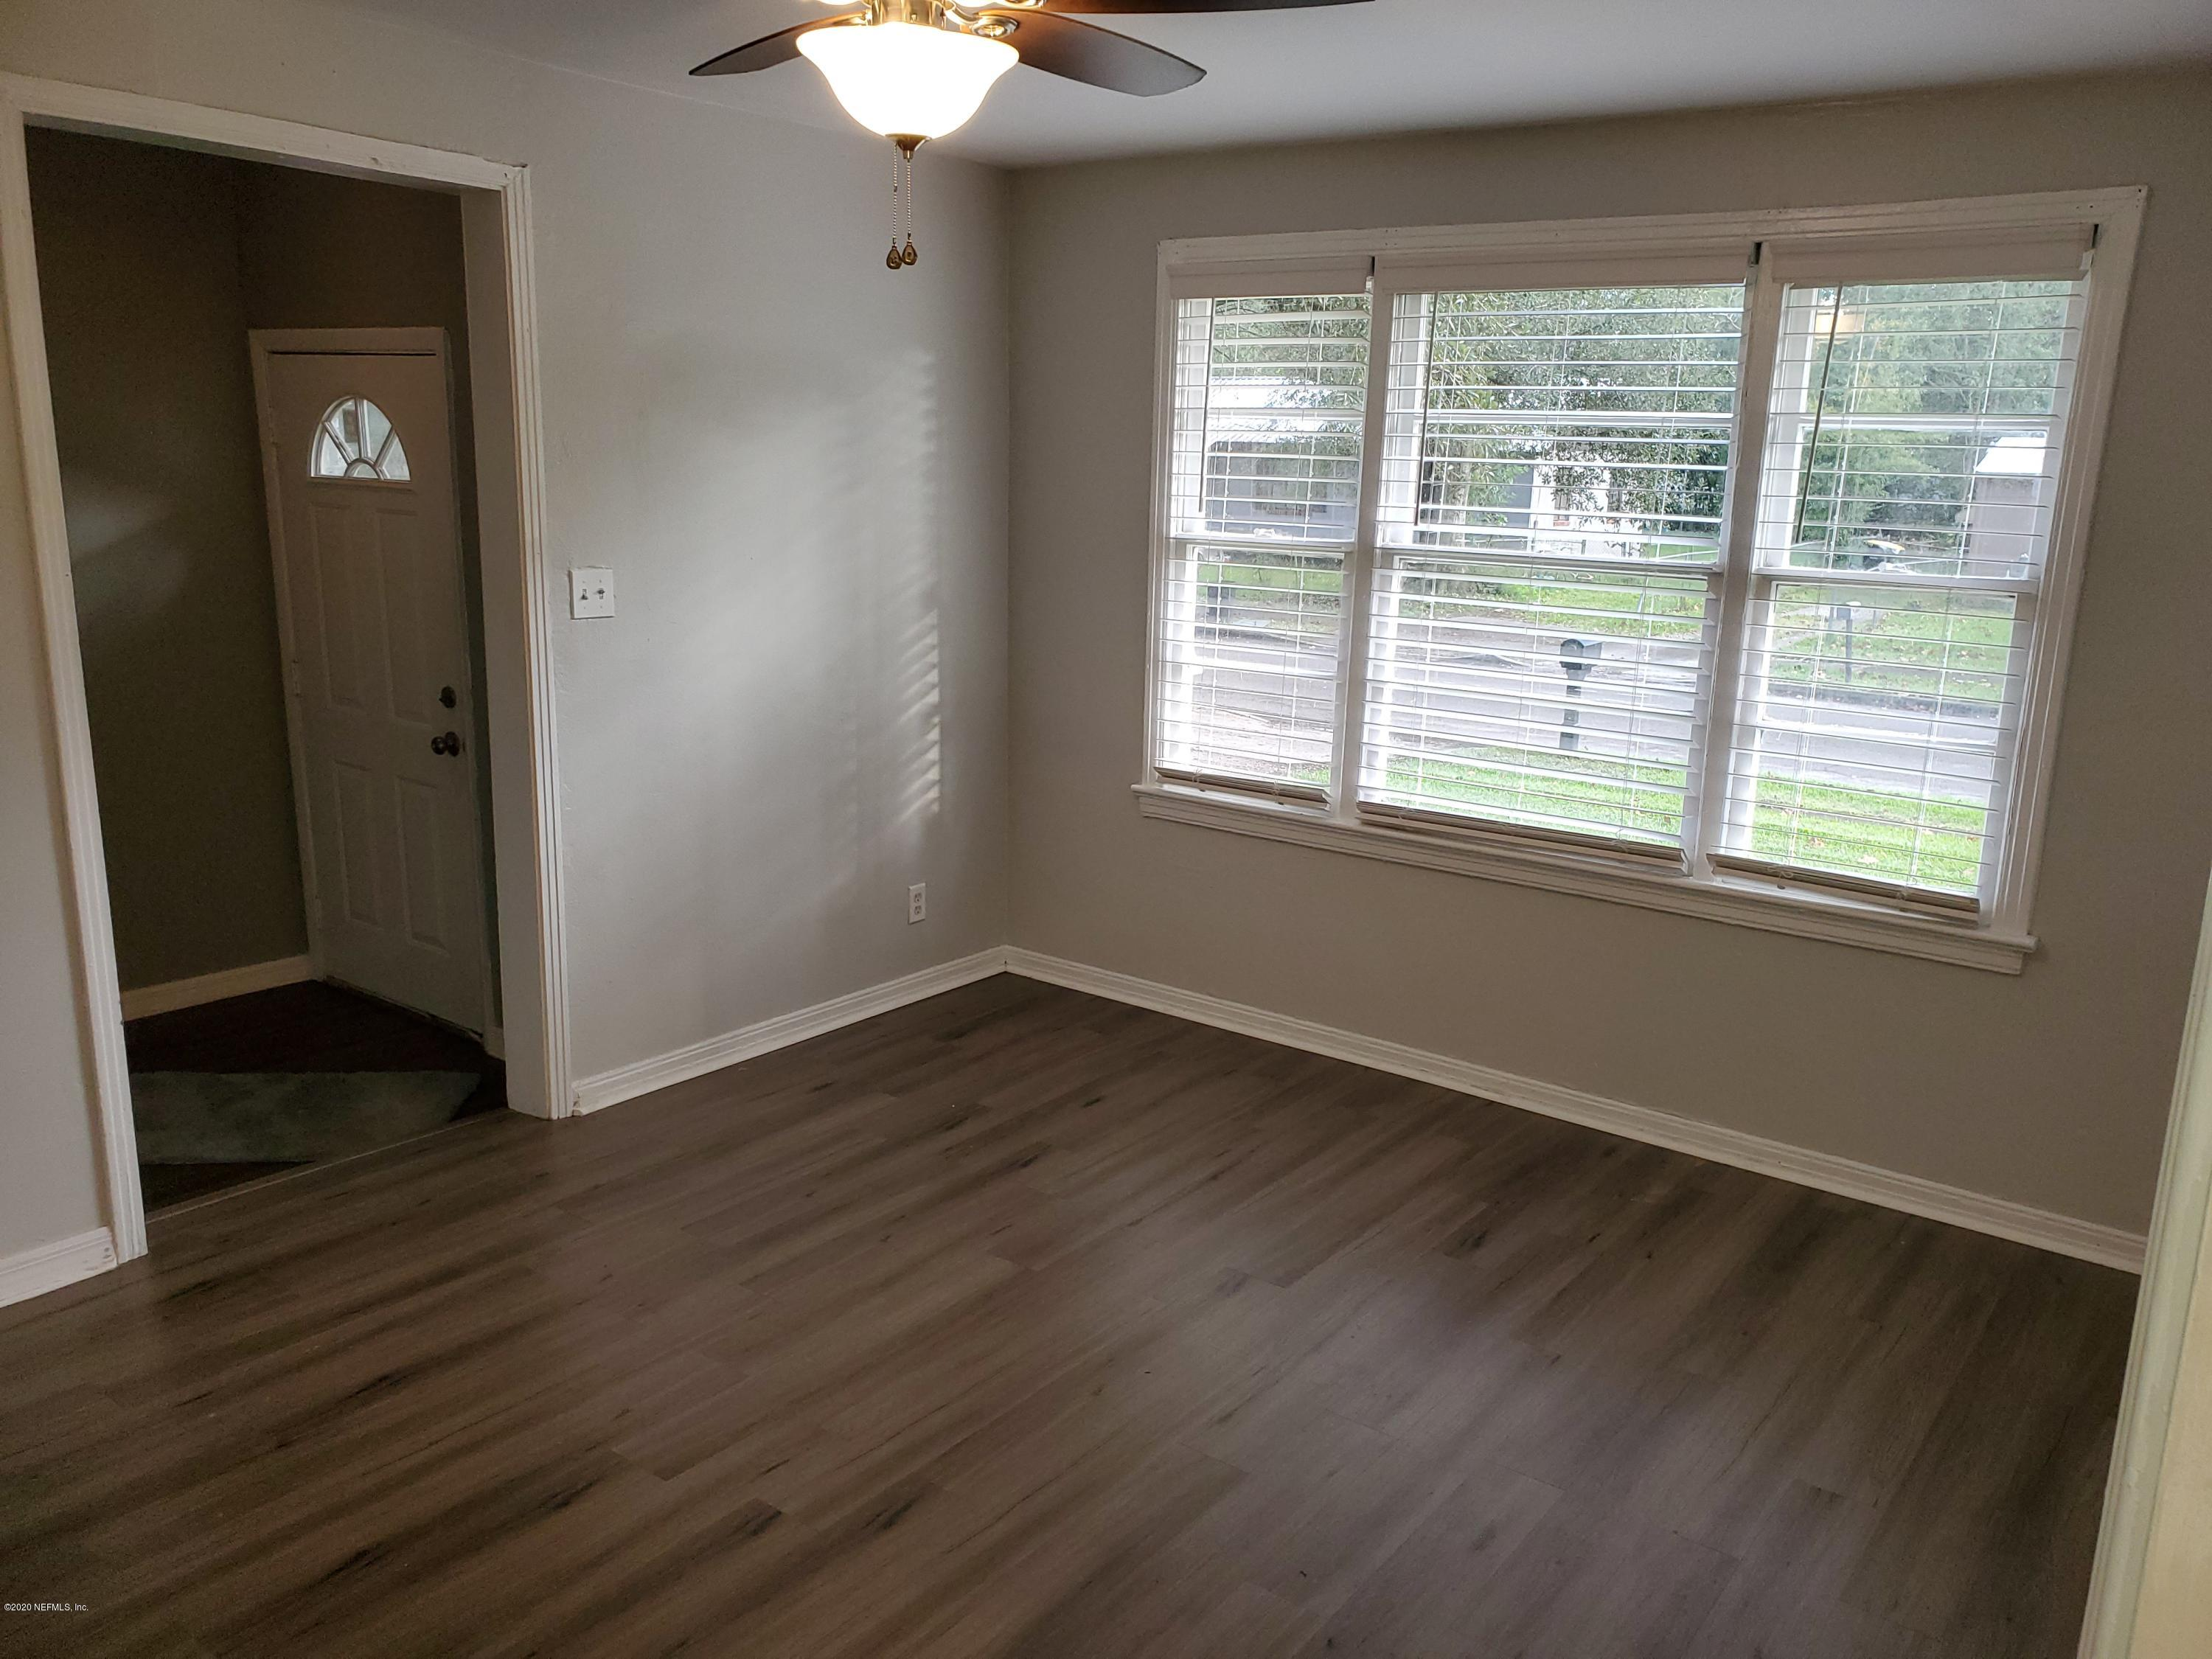 3057 18TH, JACKSONVILLE, FLORIDA 32254, 3 Bedrooms Bedrooms, ,1 BathroomBathrooms,Residential,For sale,18TH,1083222